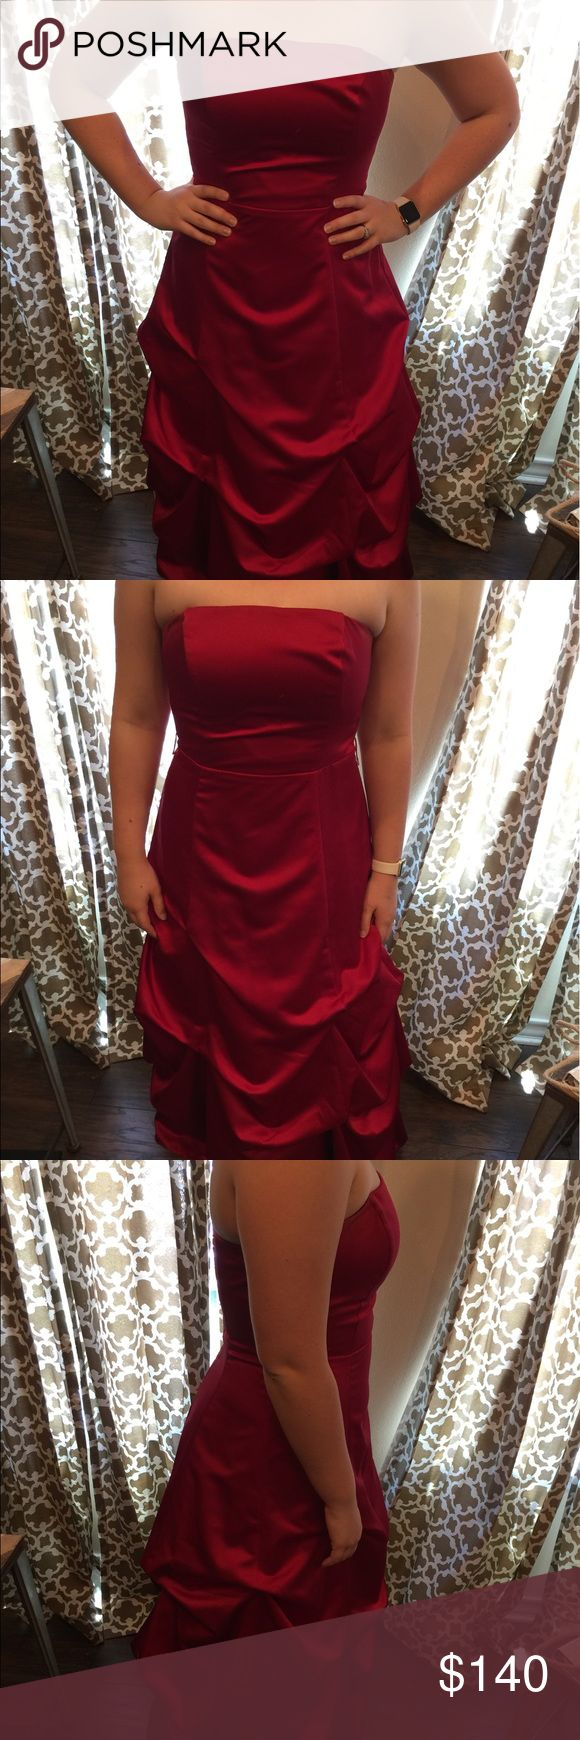 ☄️RED HOT SALE☄️David's Bridal Bridesmaid Dress Long Apple Red Strapless Bridesmaid dress from Davids Bridal. Only worn once! Great Condition! Style:81123 David's Bridal Dresses Wedding